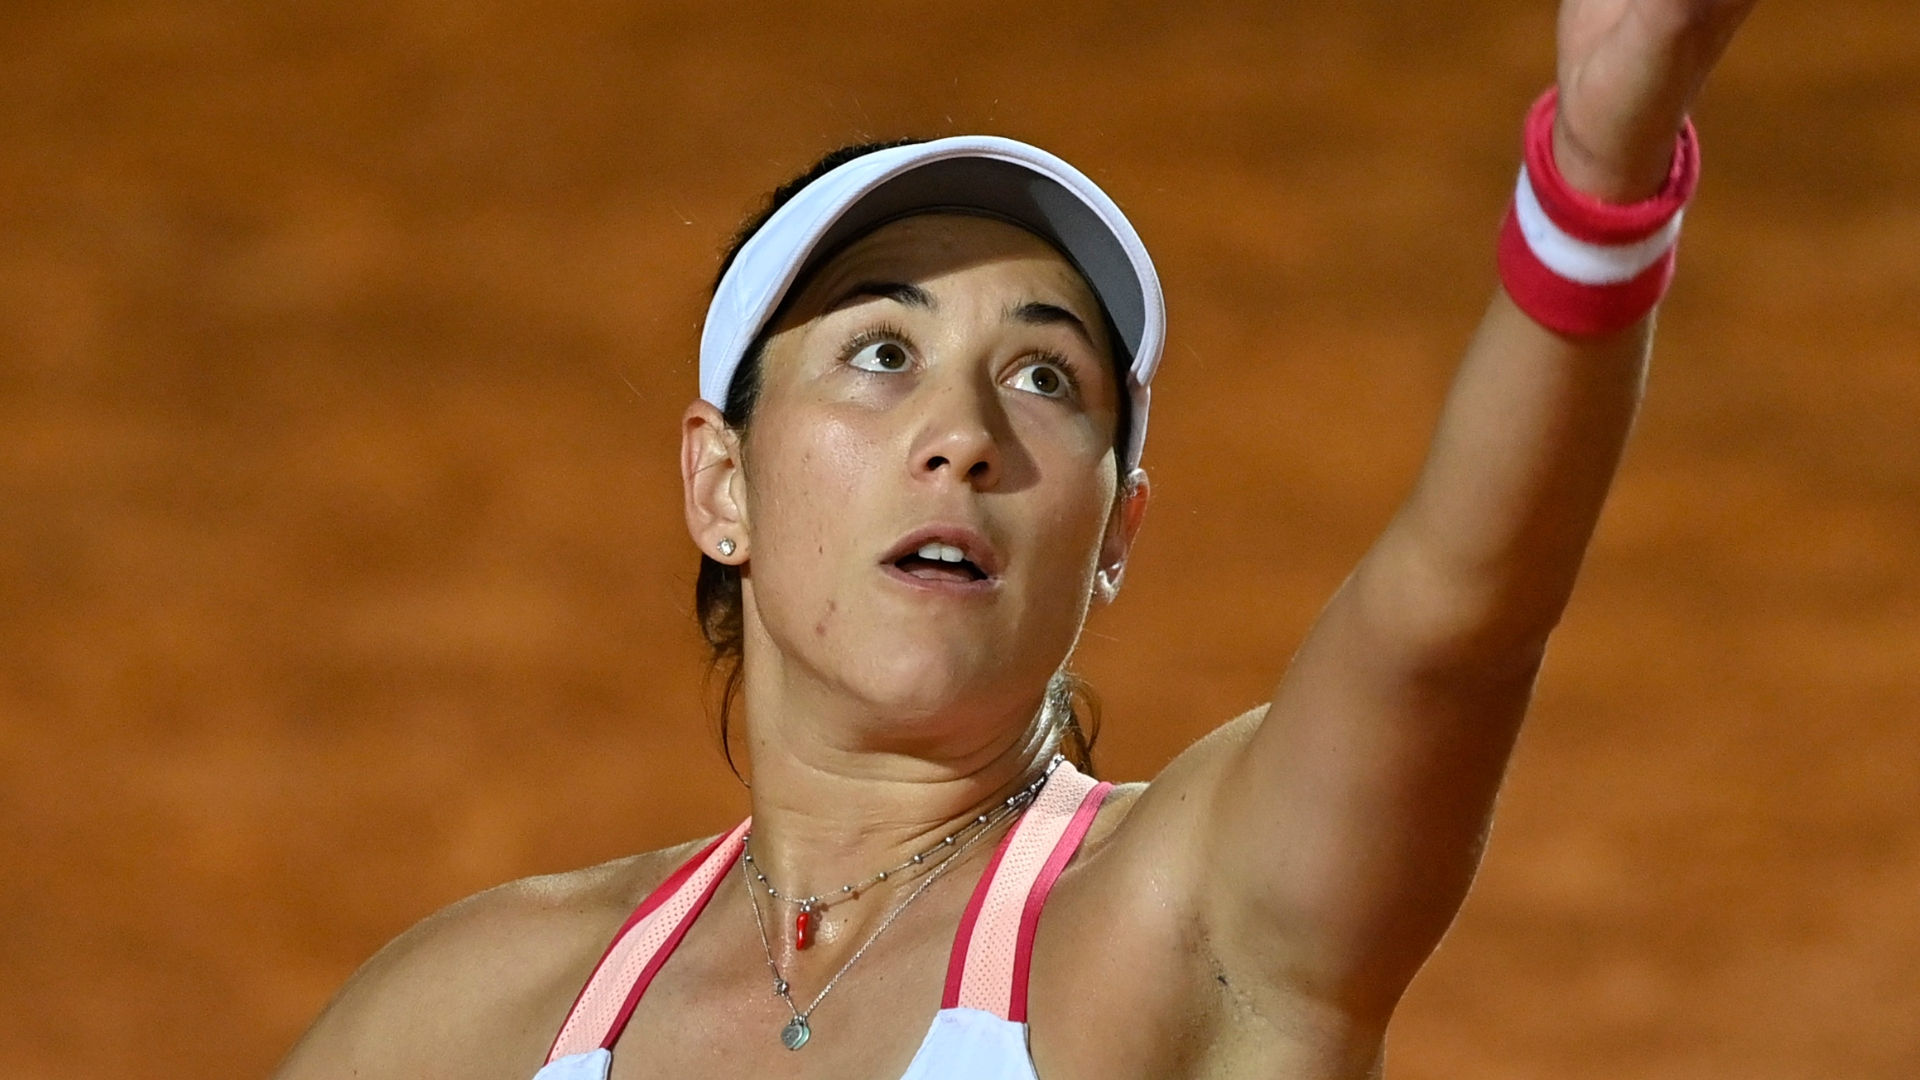 There was a lengthy rain delay during Garbine Muguruza's match with Sloane Stephens, but the Spaniard adapted and overcame.